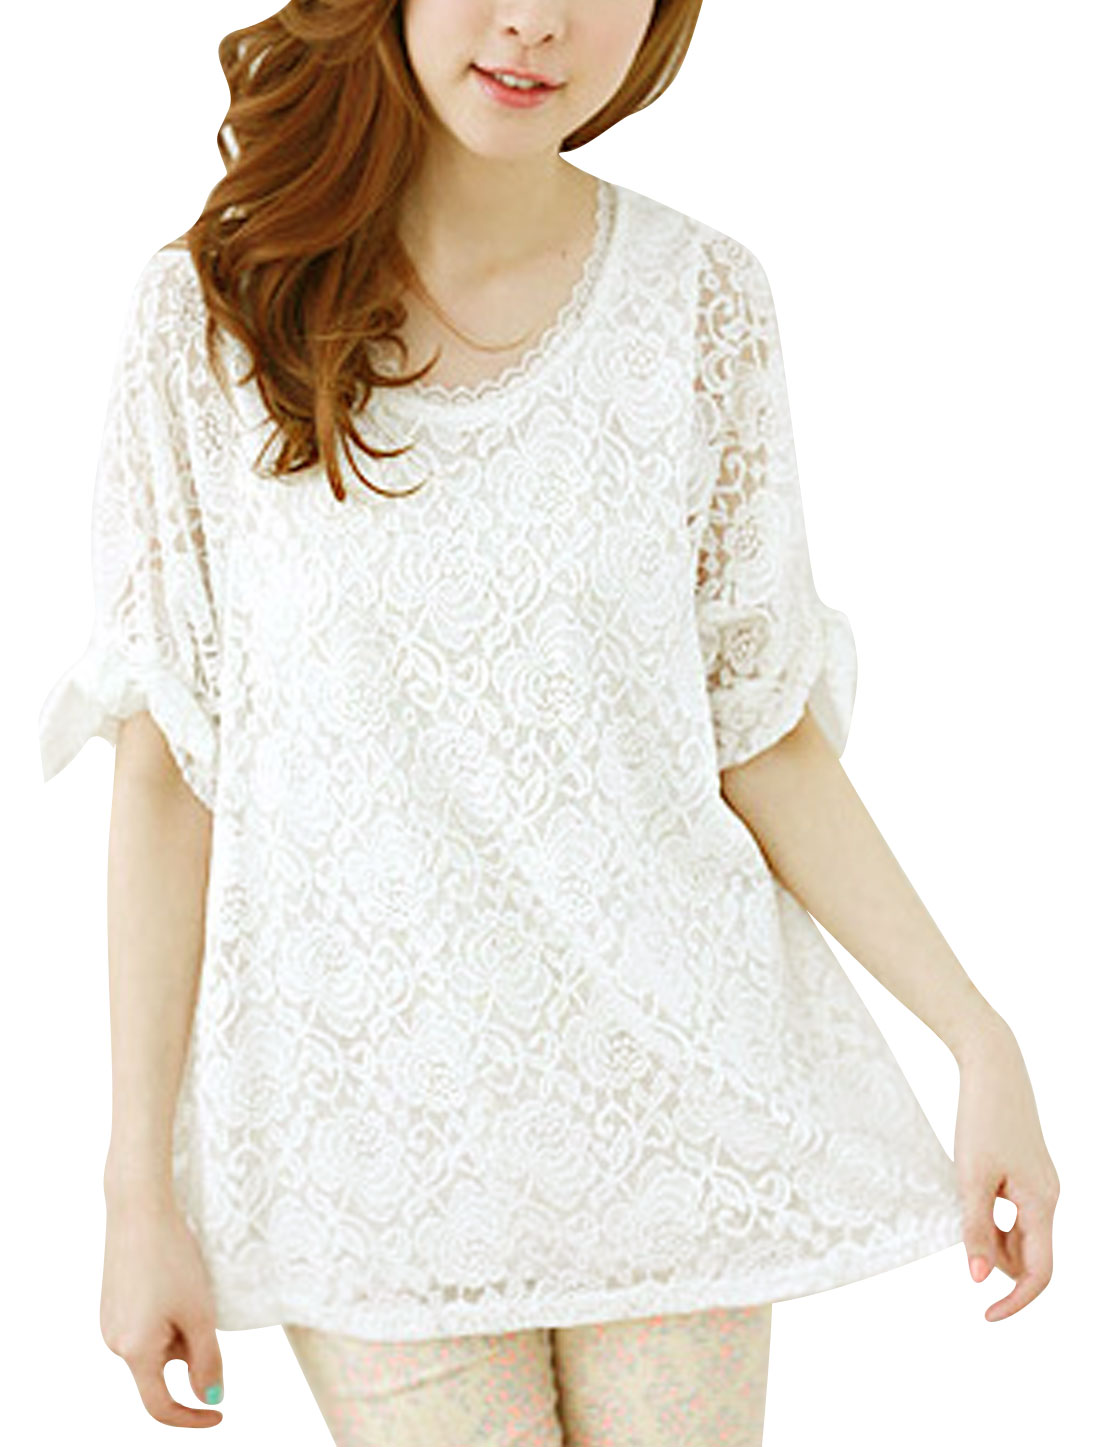 Ladies Elbow Sleeves Self Tie Cuffs Floral Lace Tops White XS